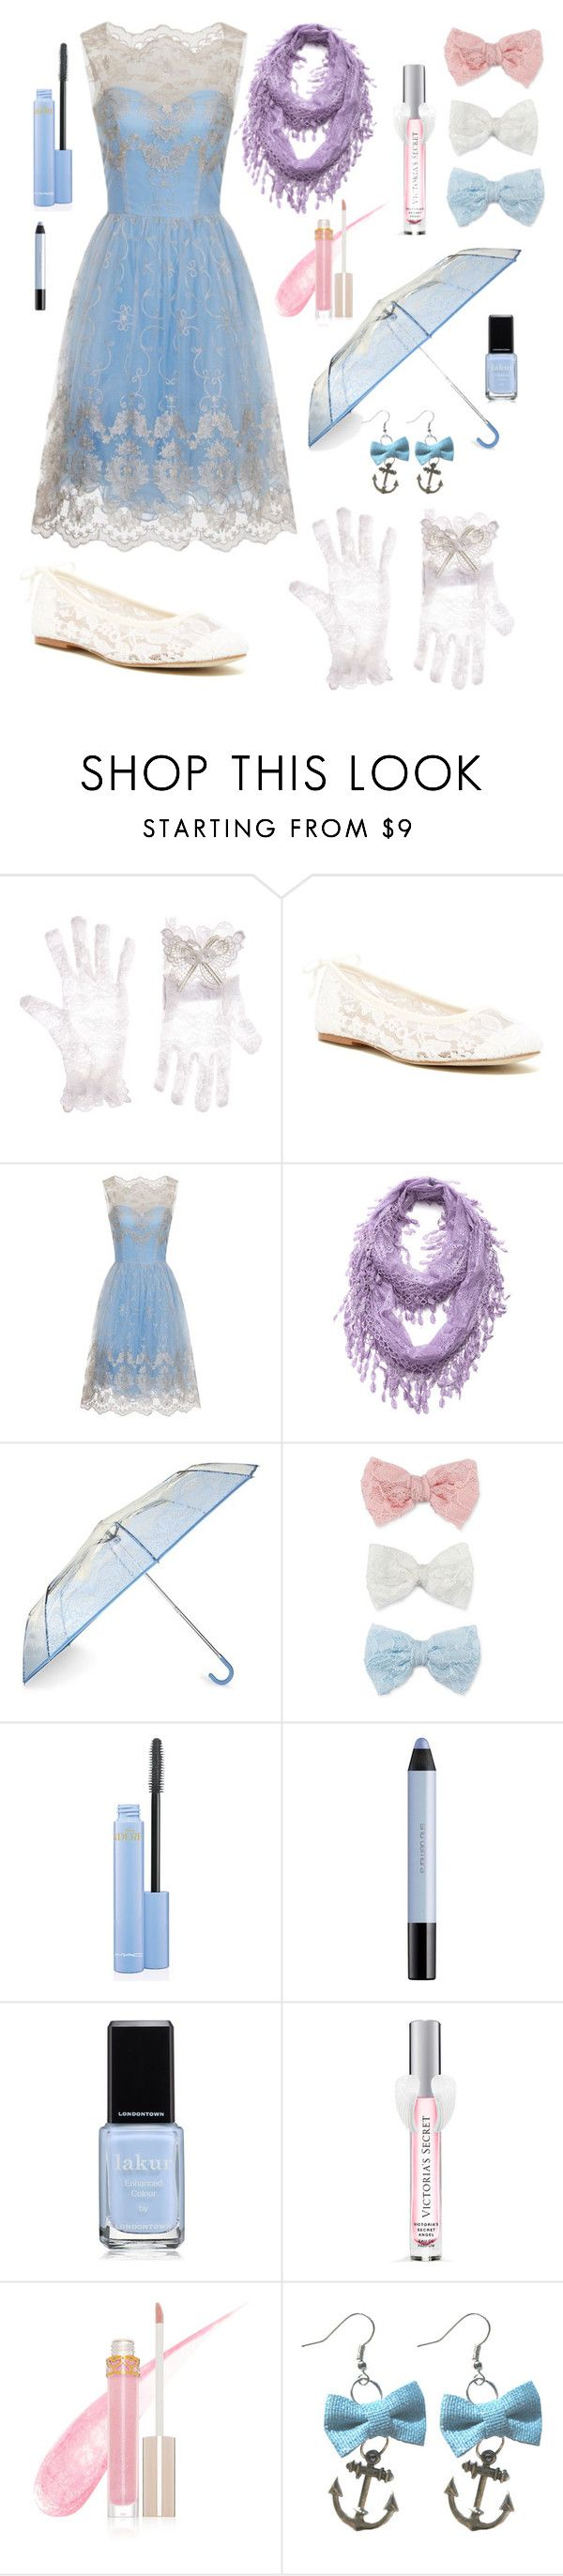 """Cyntia's Elegant V-day Date Outfit"" by lexi-the-fashion-queen ❤ liked on Polyvore featuring Monsoon, Soludos, Chi Chi, Cozy by LuLu, Decree, shu uemura, Victoria's Secret, Stila, women's clothing and women"